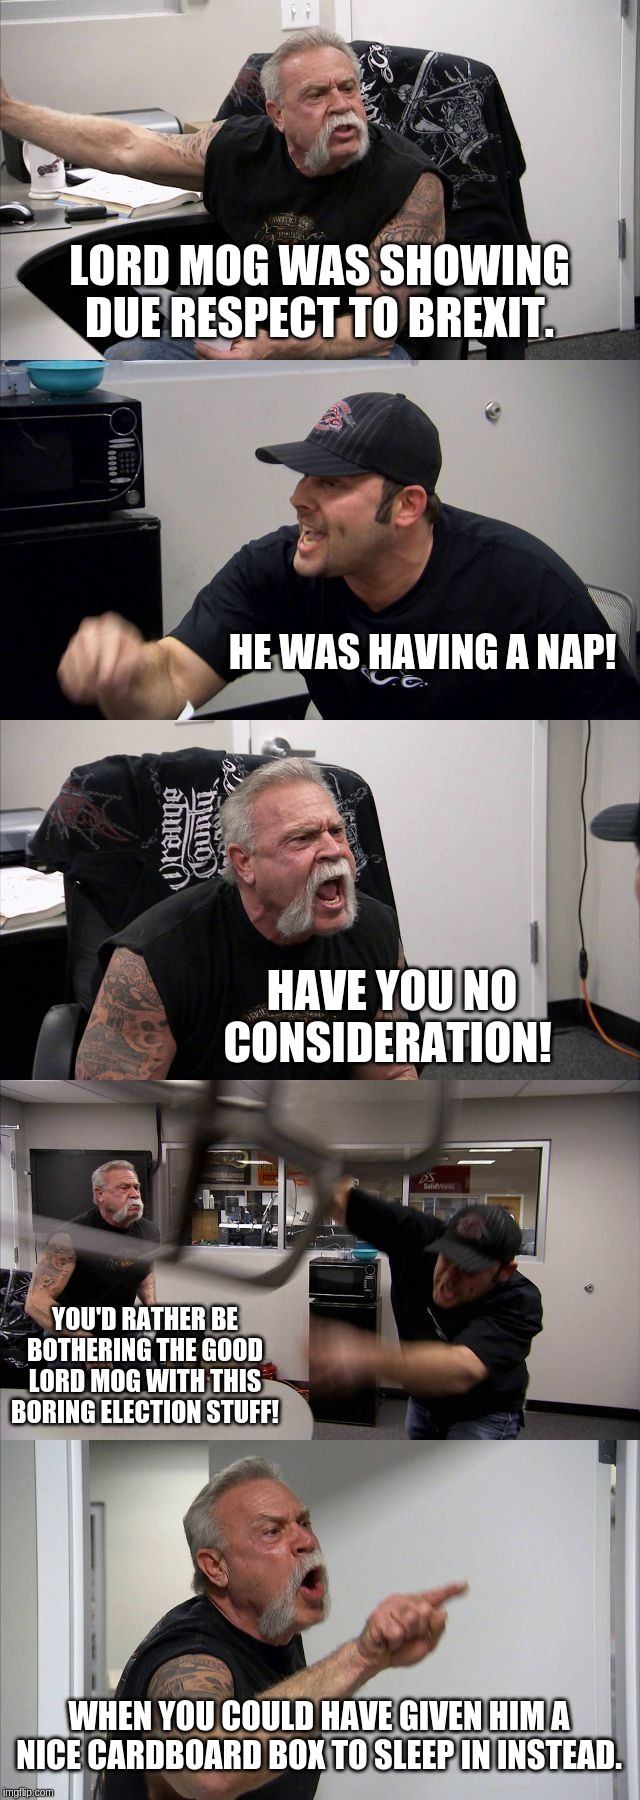 Lord Mog Napster | LORD MOG WAS SHOWING DUE RESPECT TO BREXIT. HE WAS HAVING A NAP! HAVE YOU NO CONSIDERATION! YOU'D RATHER BE BOTHERING THE GOOD LORD MOG WITH | image tagged in memes,american chopper argument,lord,mog,brexit | made w/ Imgflip meme maker